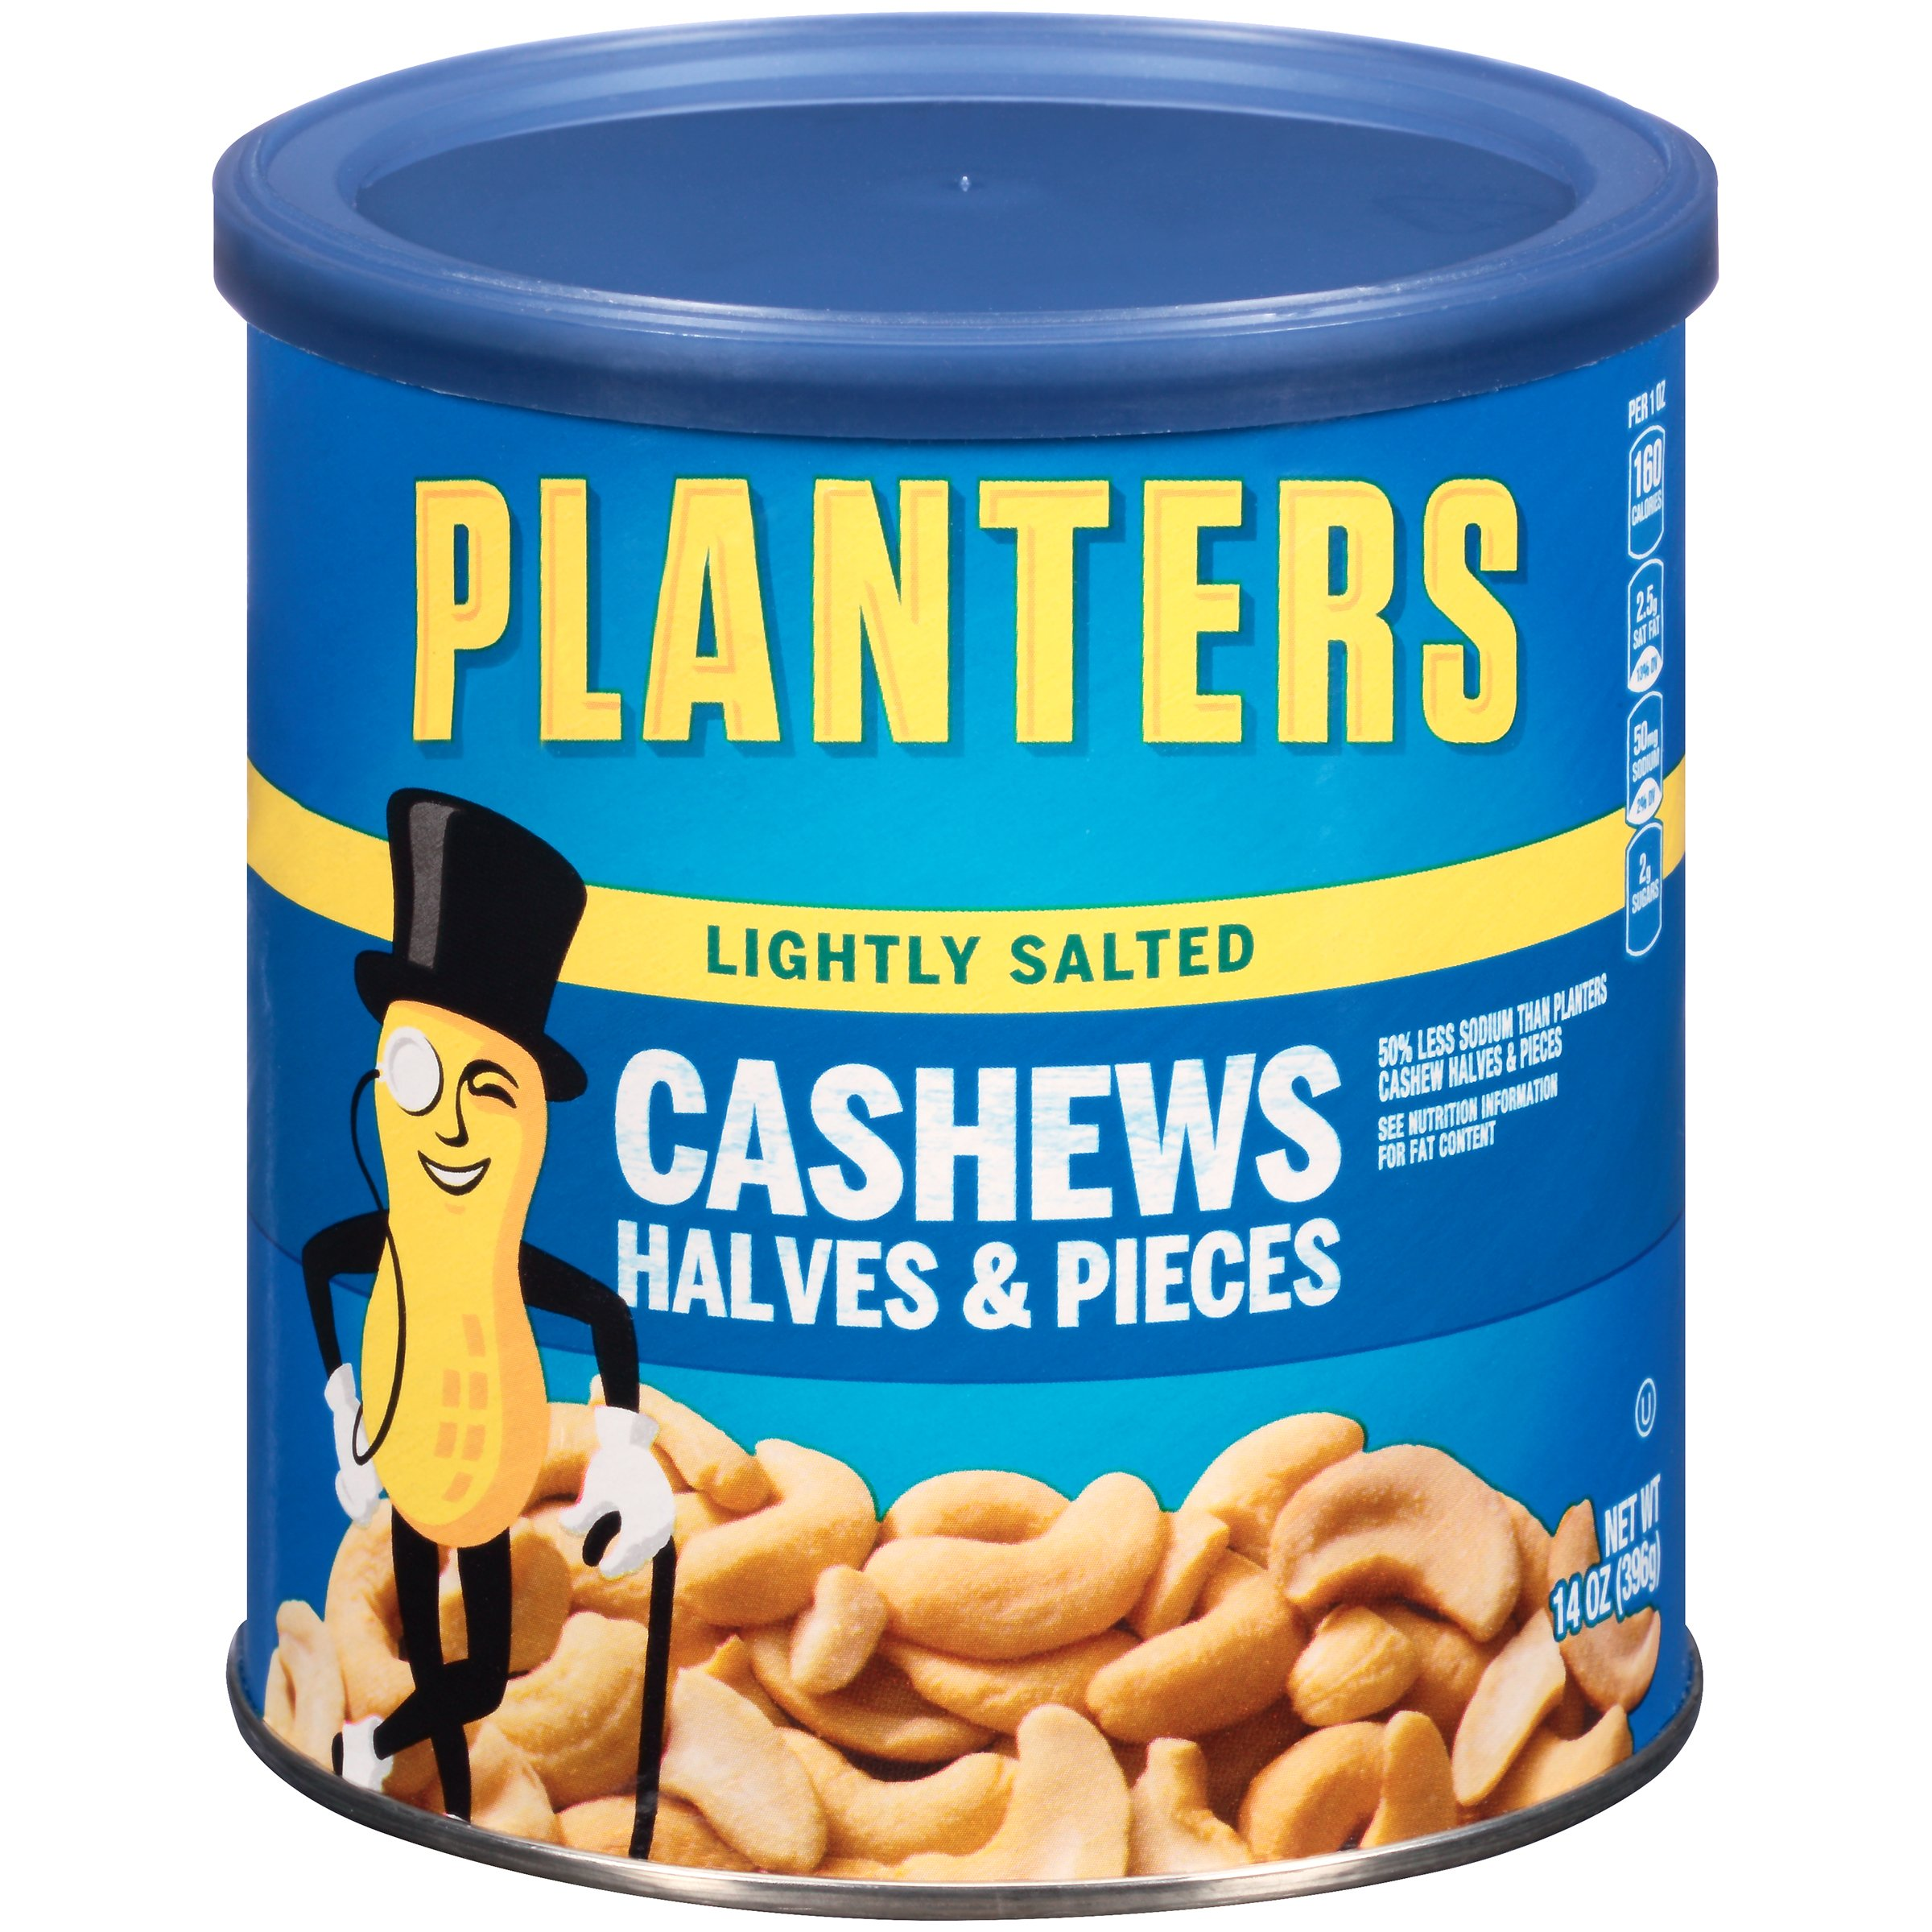 Planters Cashew Halves & Pieces, Lightly Salted, 14 Ounce Canister (Pack of 3)